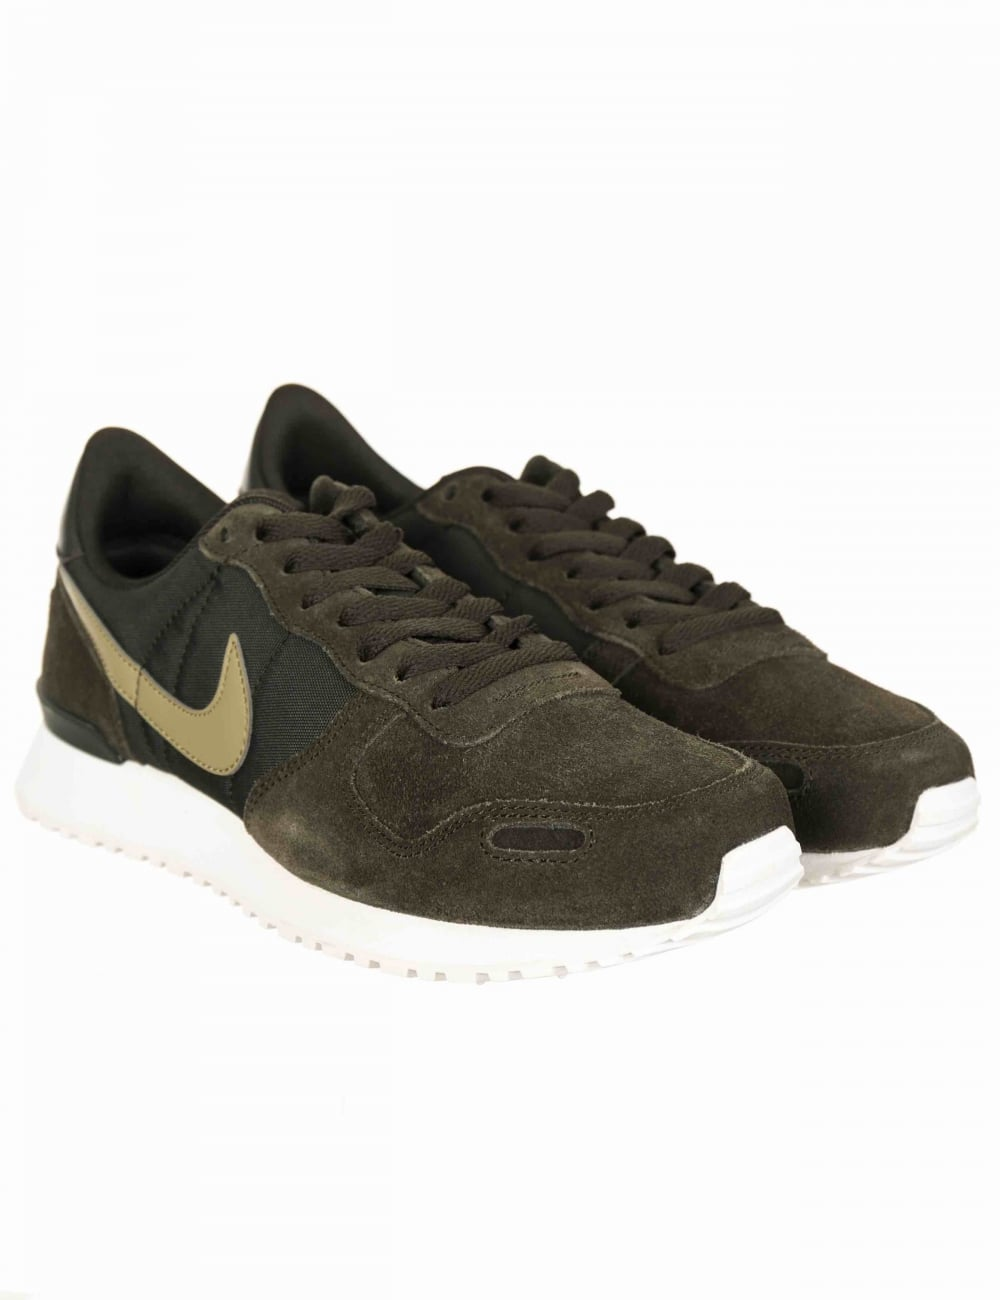 47bf15f425d7a6 Nike Air Vortex Ltr Trainers - Sequoia/Neutal Olive - Footwear from ...